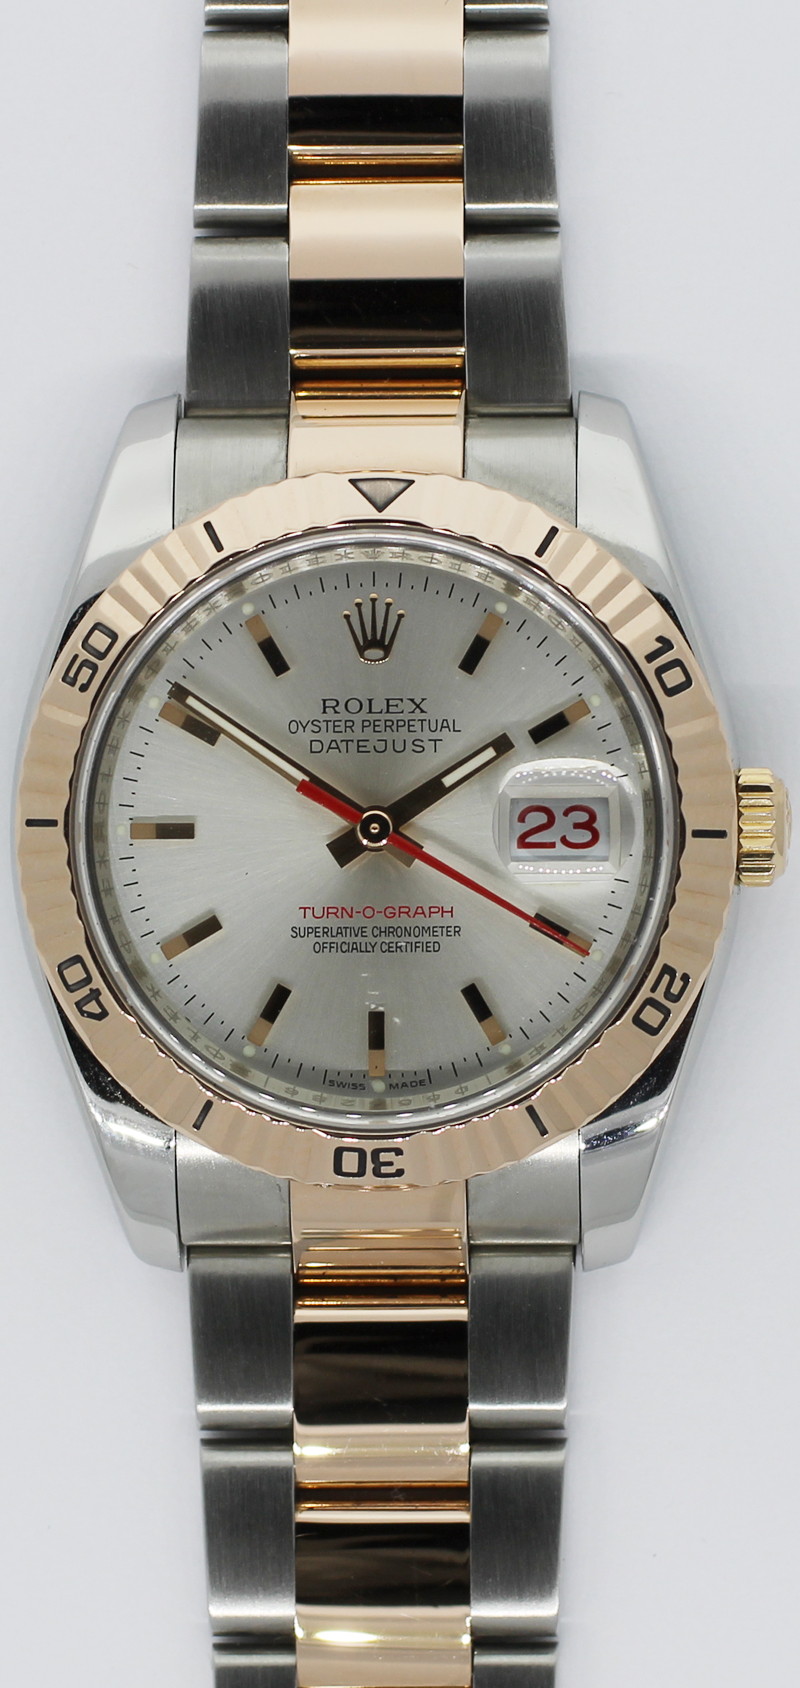 Rolex Datejust Turn-O-Graph 18k Rose Gold & Steel 116261 D Serial